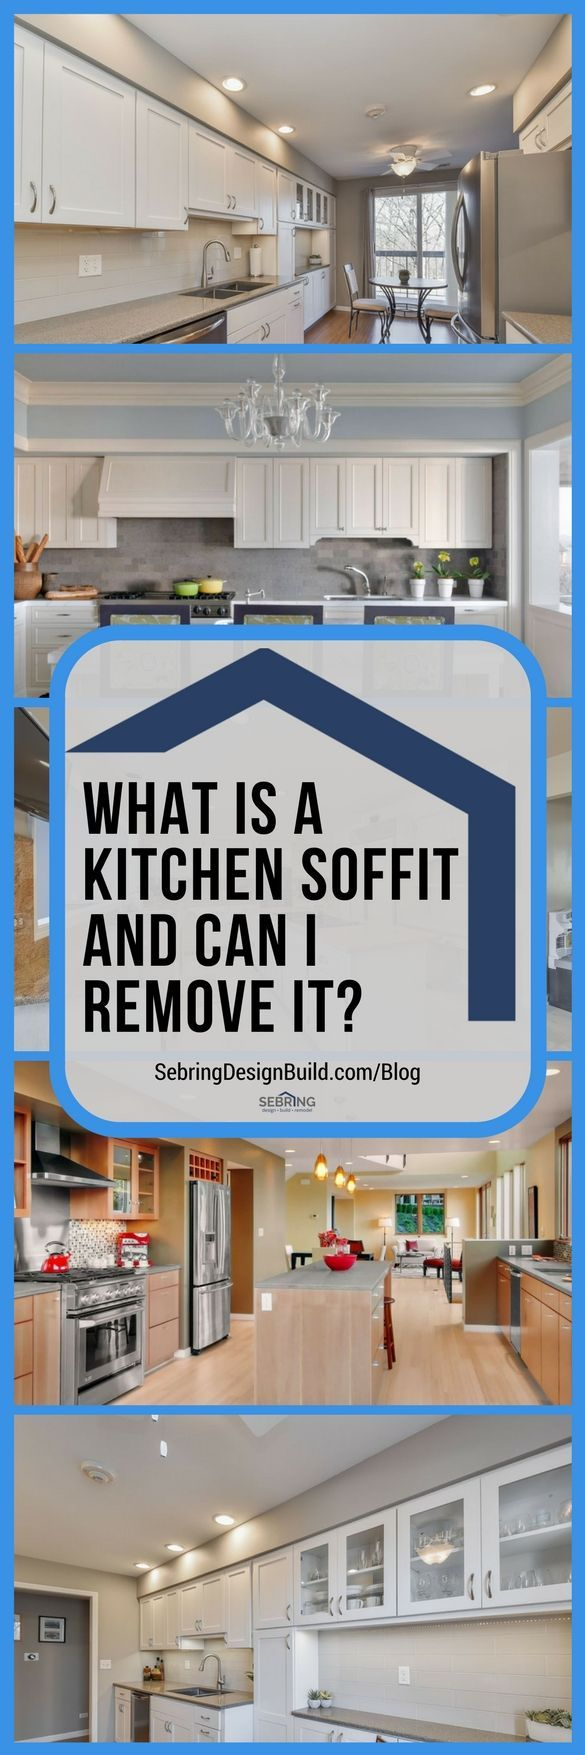 What Is A Kitchen Soffit And Can I Remove It